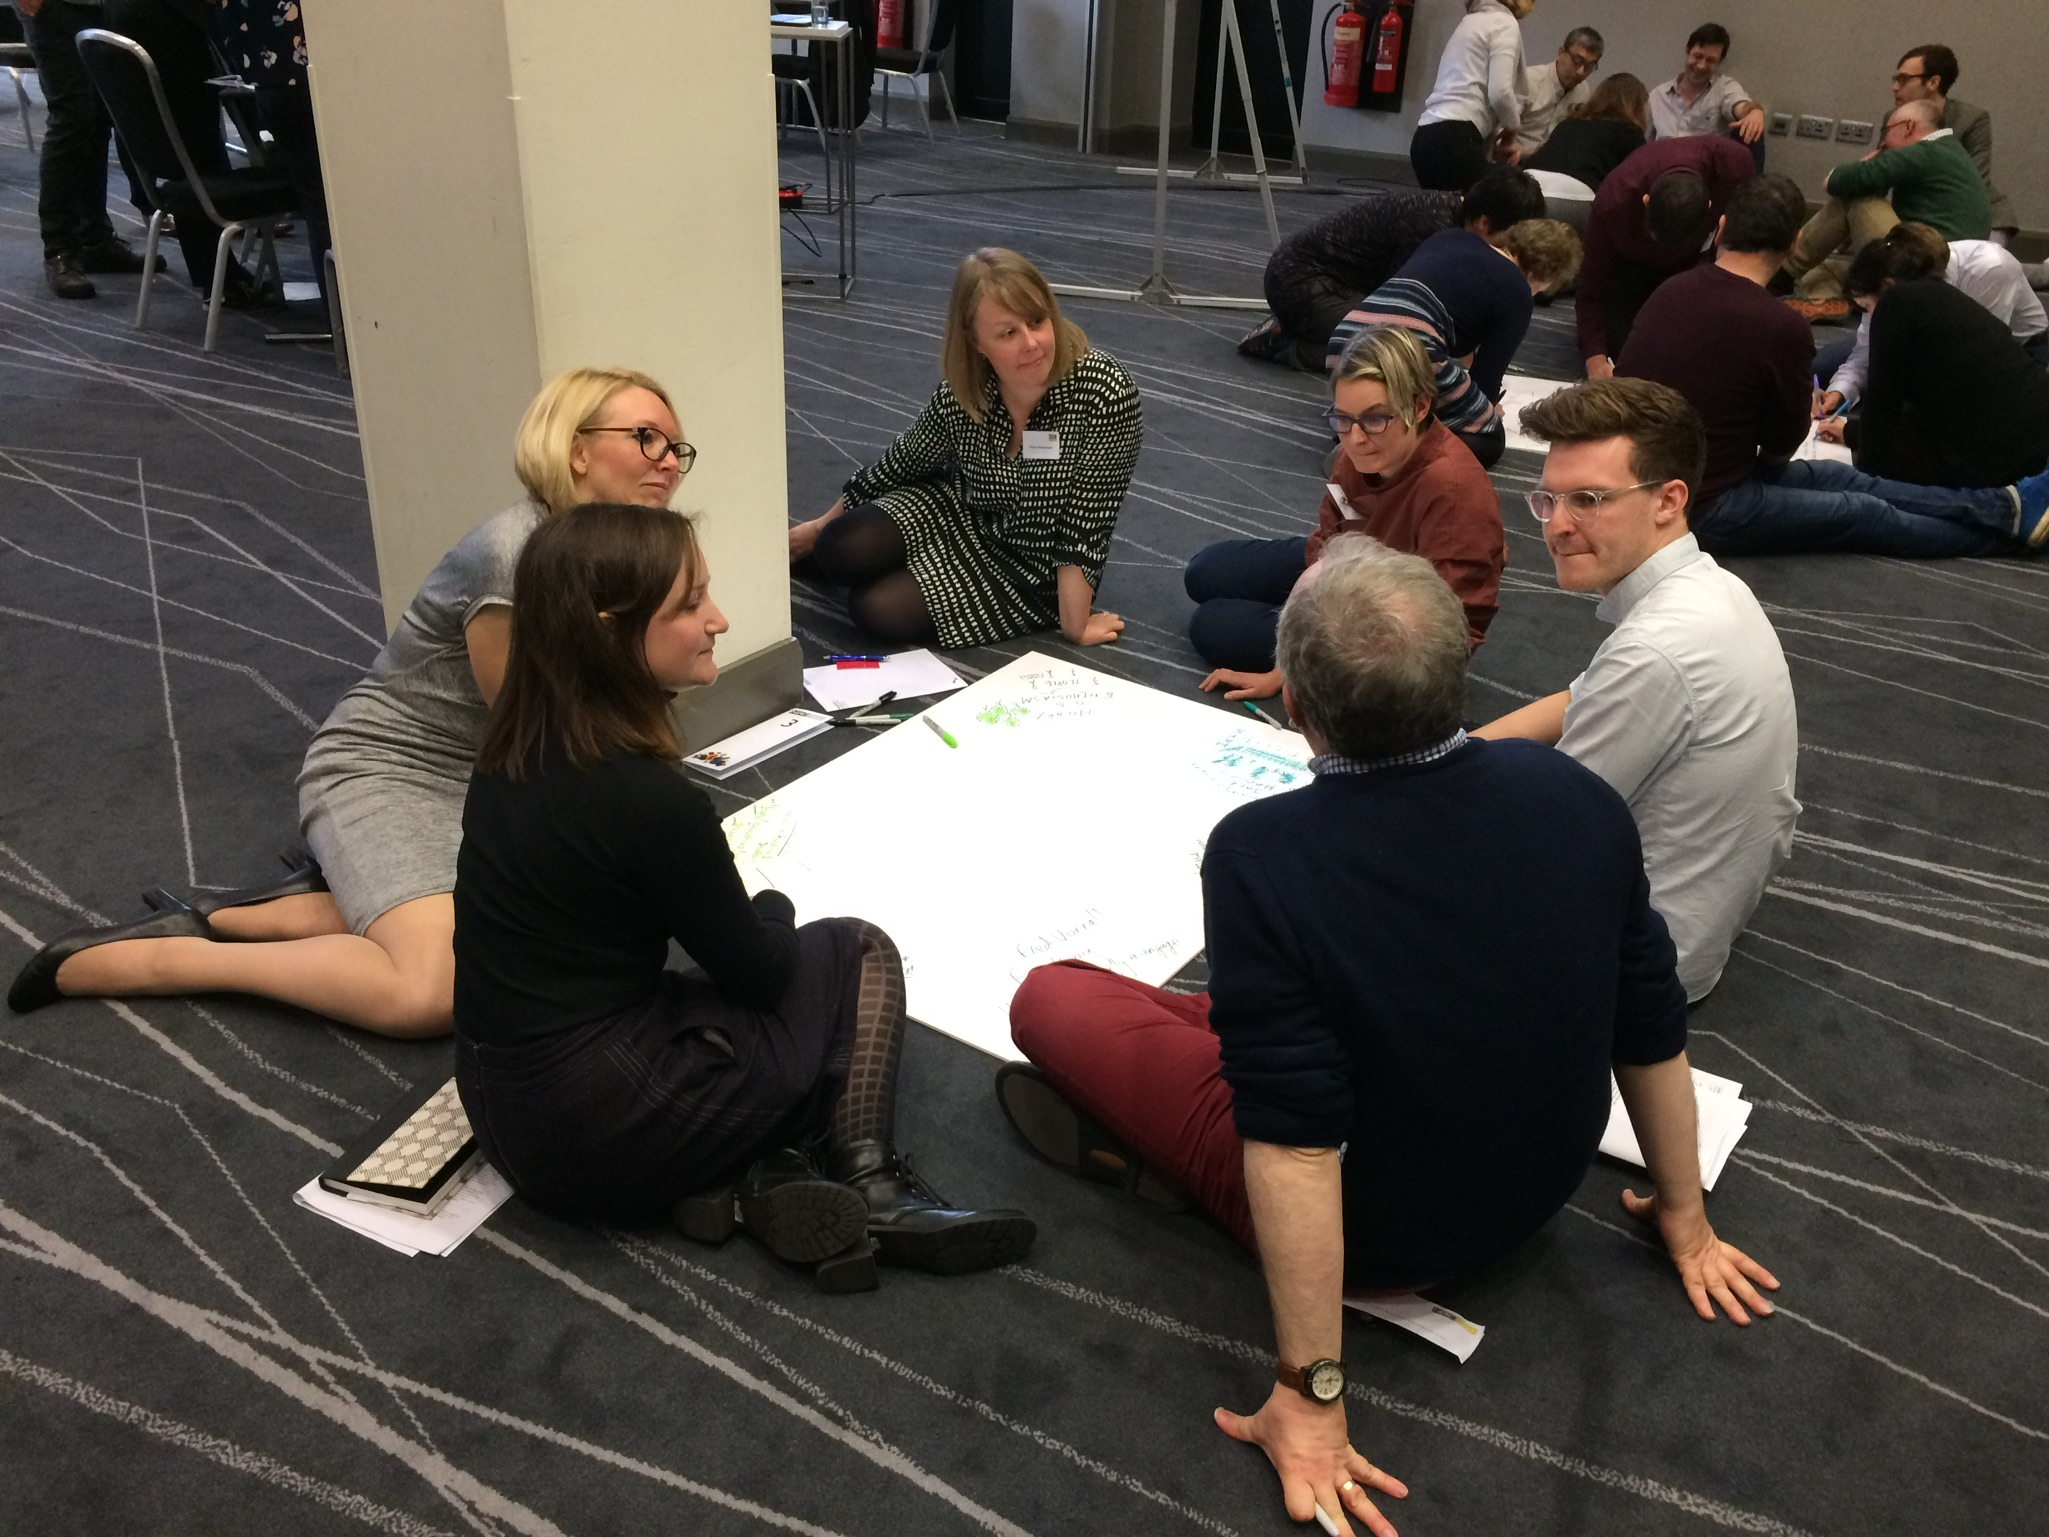 Image of people sitting in a circle brainstorming